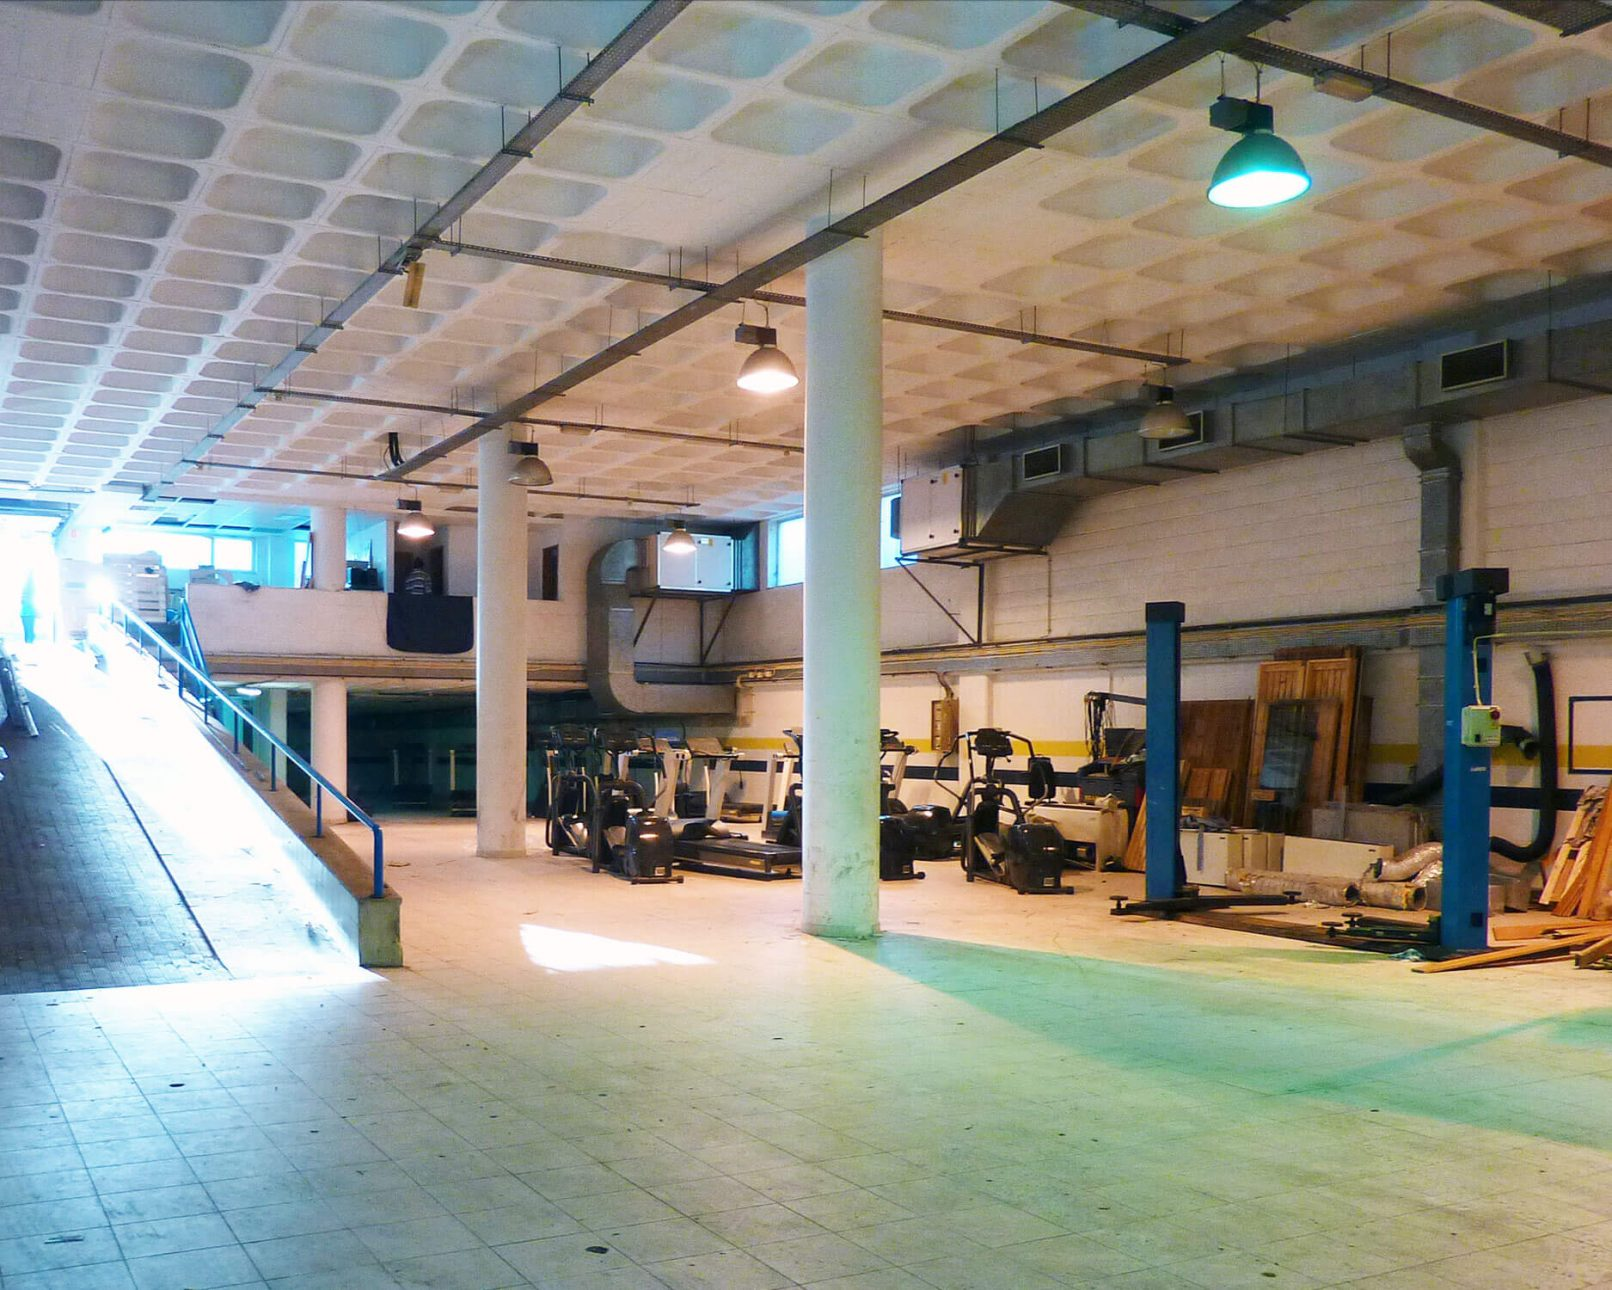 Image of the space before its conversion into a crossfit box.